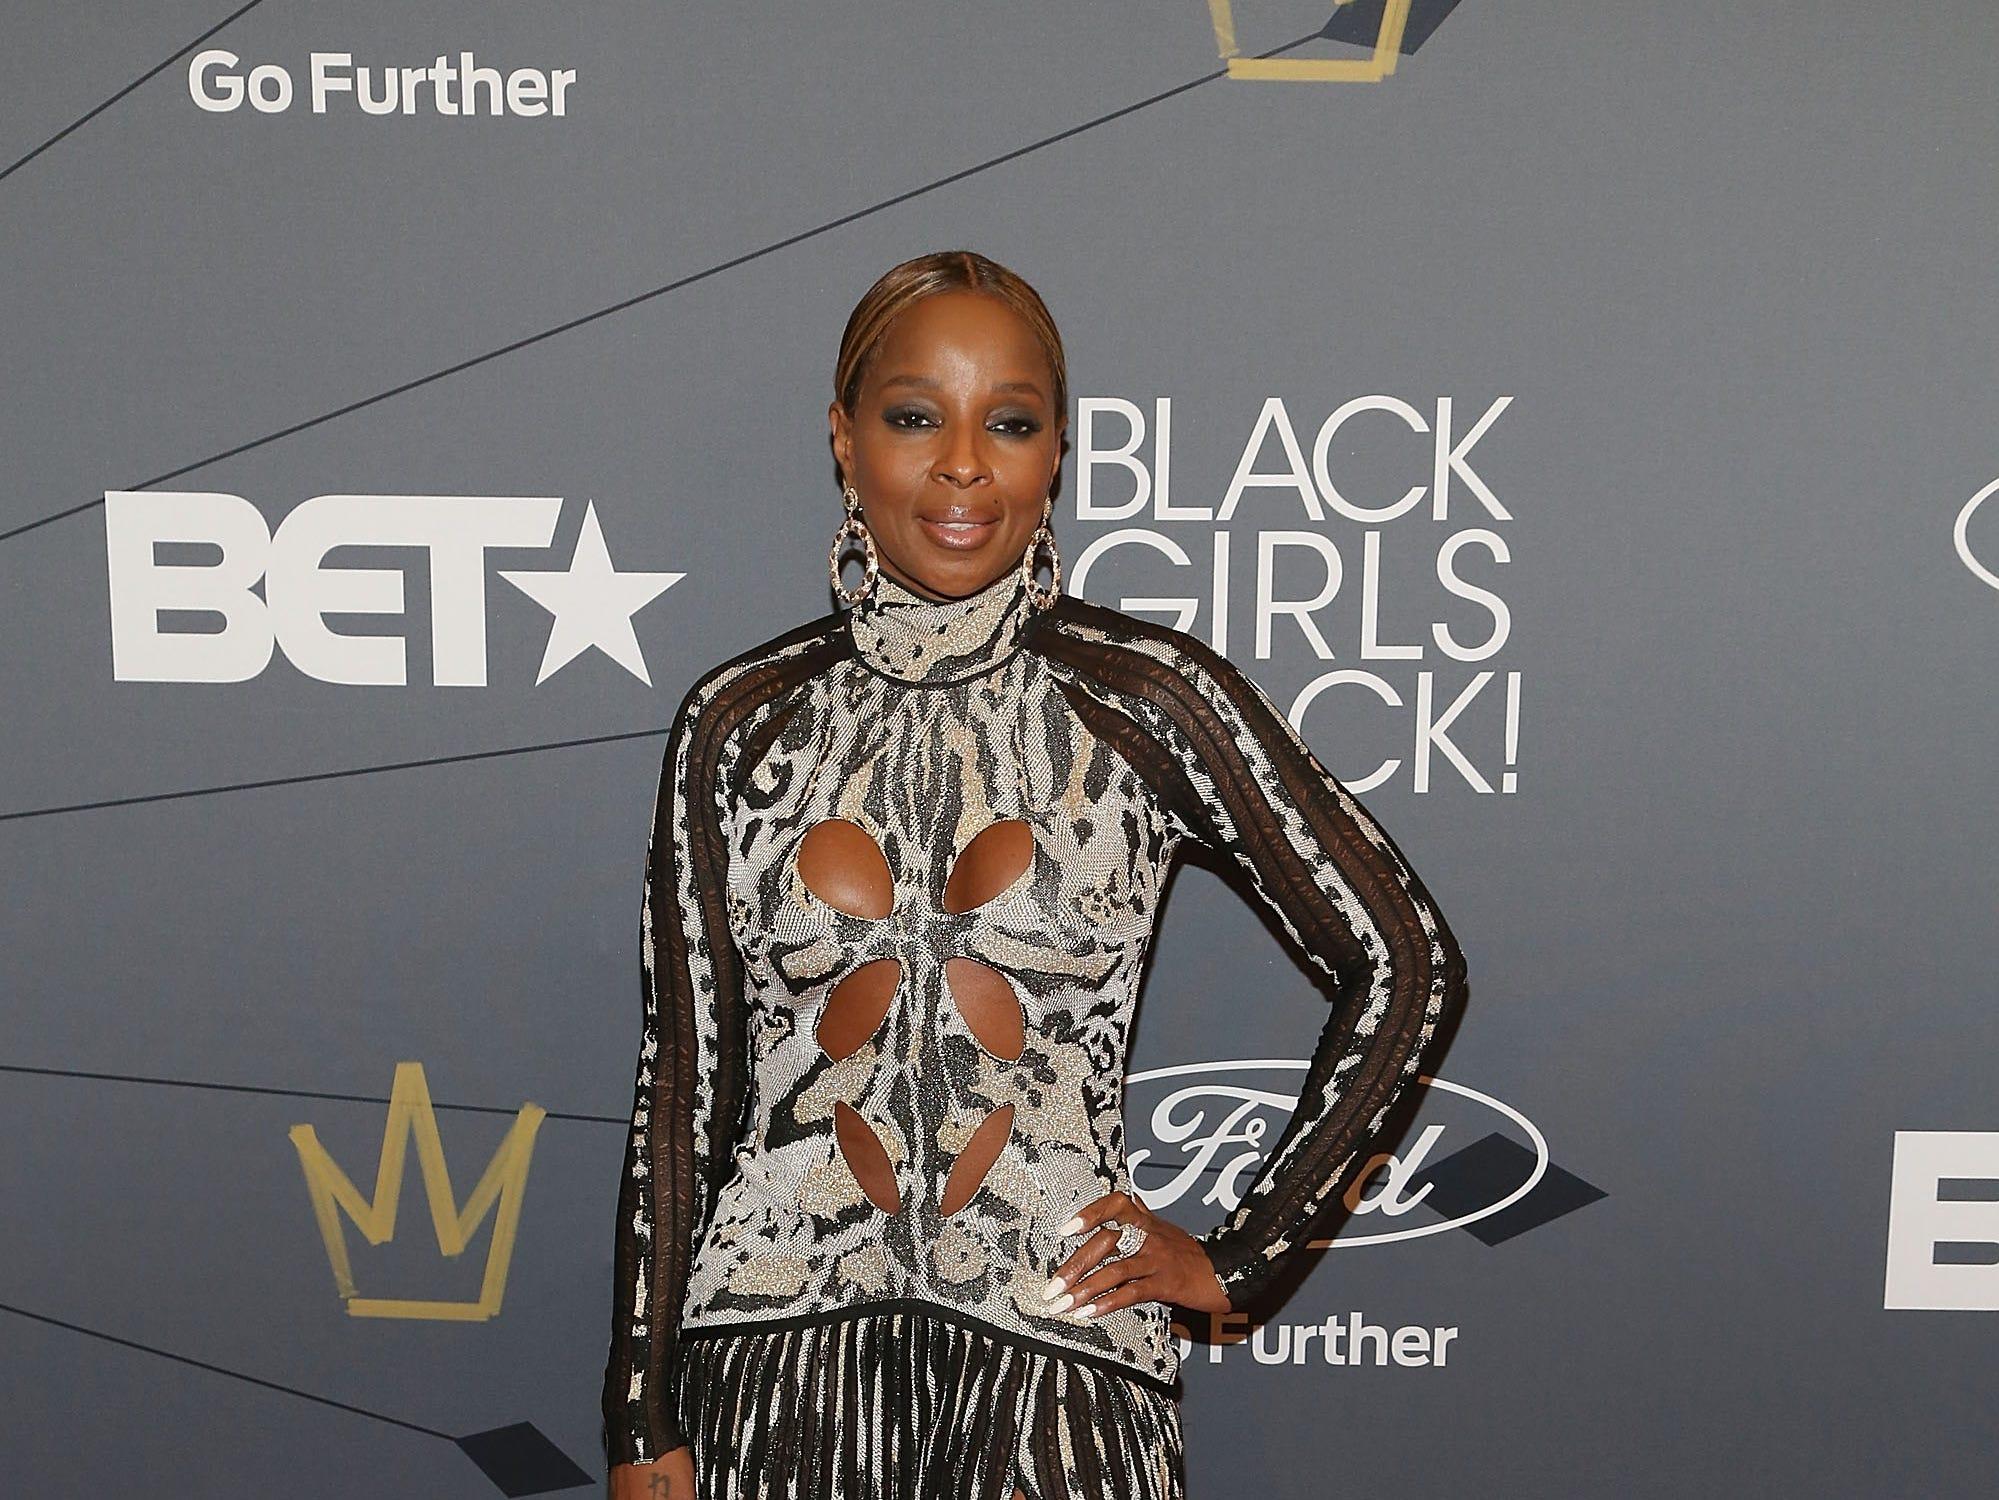 Mary J. Blige rocked a cut-out dress at the Black Girls Rock! 2018 red carpet on Aug. 26, 2018 in Newark.